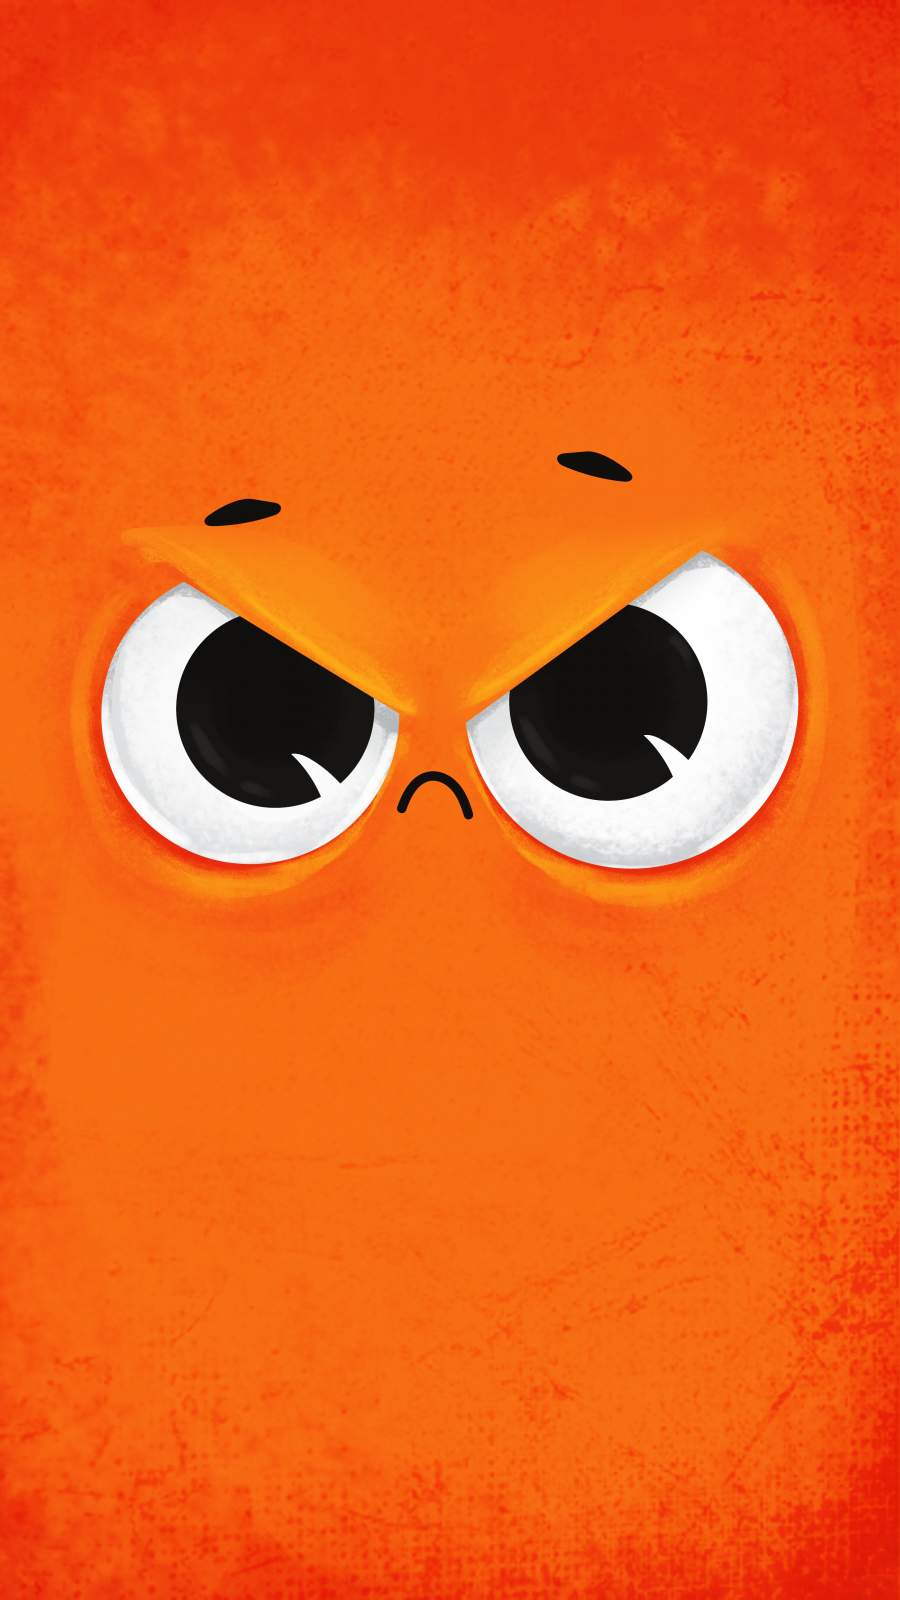 Rude Face iPhone Wallpaper